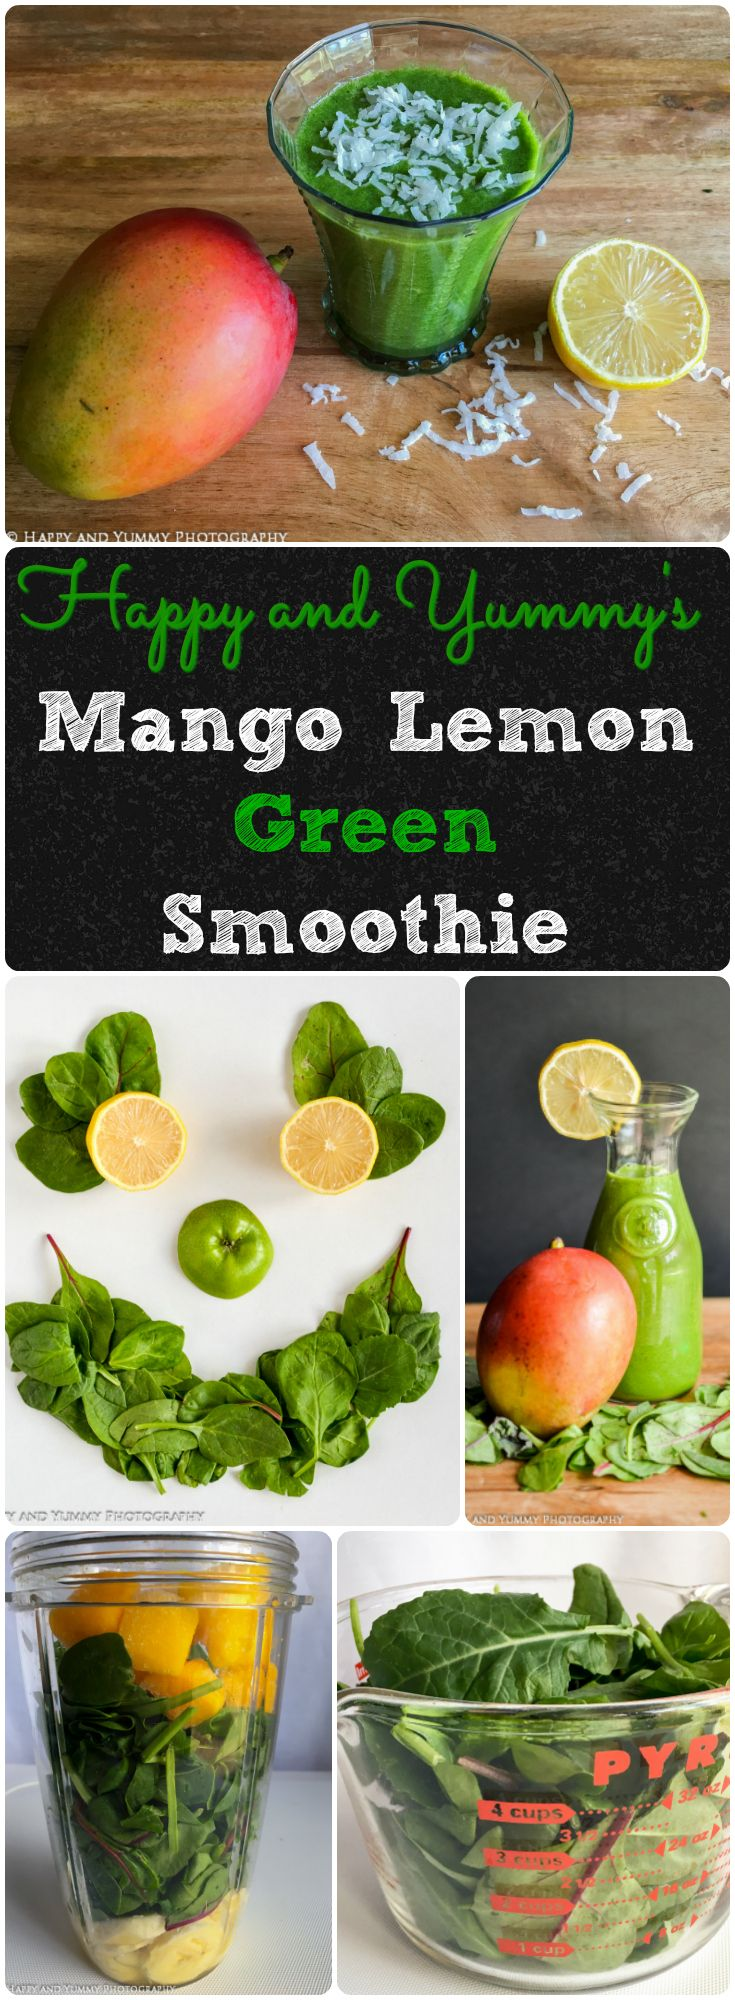 Mango Lemon Green Smoothie is loaded with nutrition and tastes like the tropics! Just 5 easy ingredients in this vegan and gluten free smoothie.